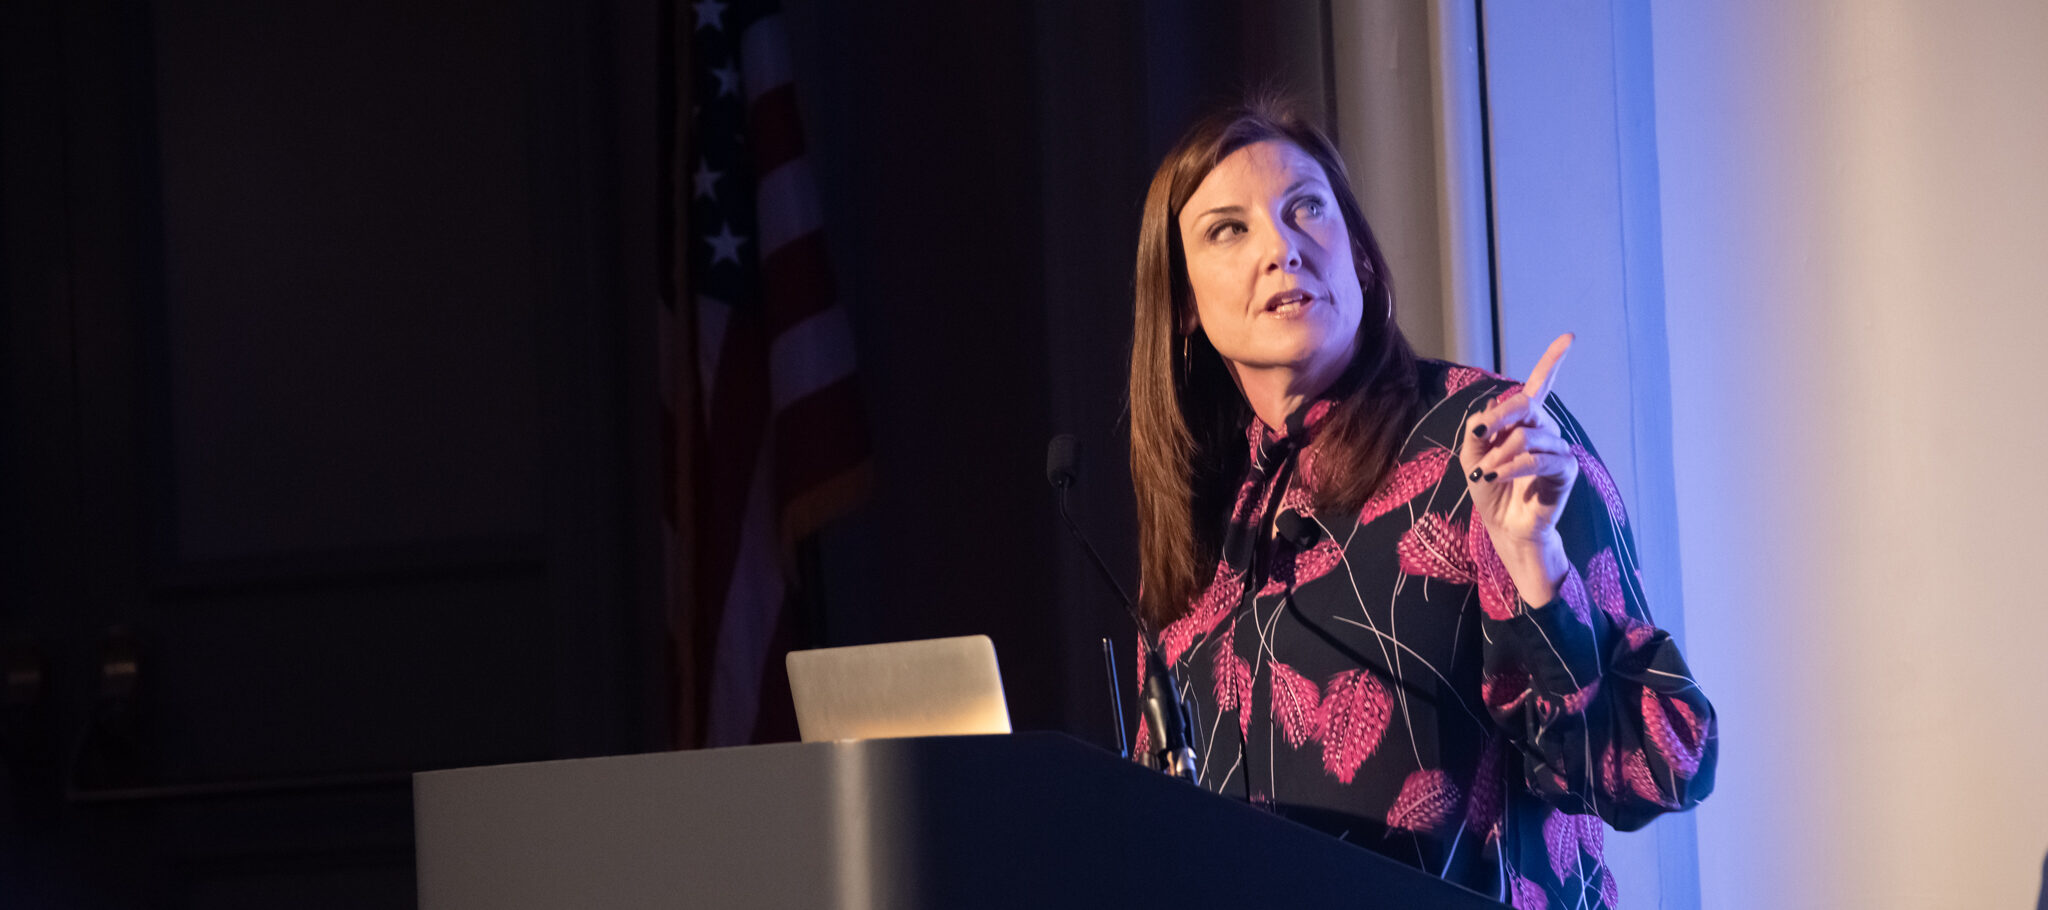 Jackie Payne—a light-skinned adult woman with straight, dark brown hair—stands at a podium in front of a laptop, looking to her side and behind her at a projected presentation she's giving. Her left hand is raised to point at the presentation while she speaks.